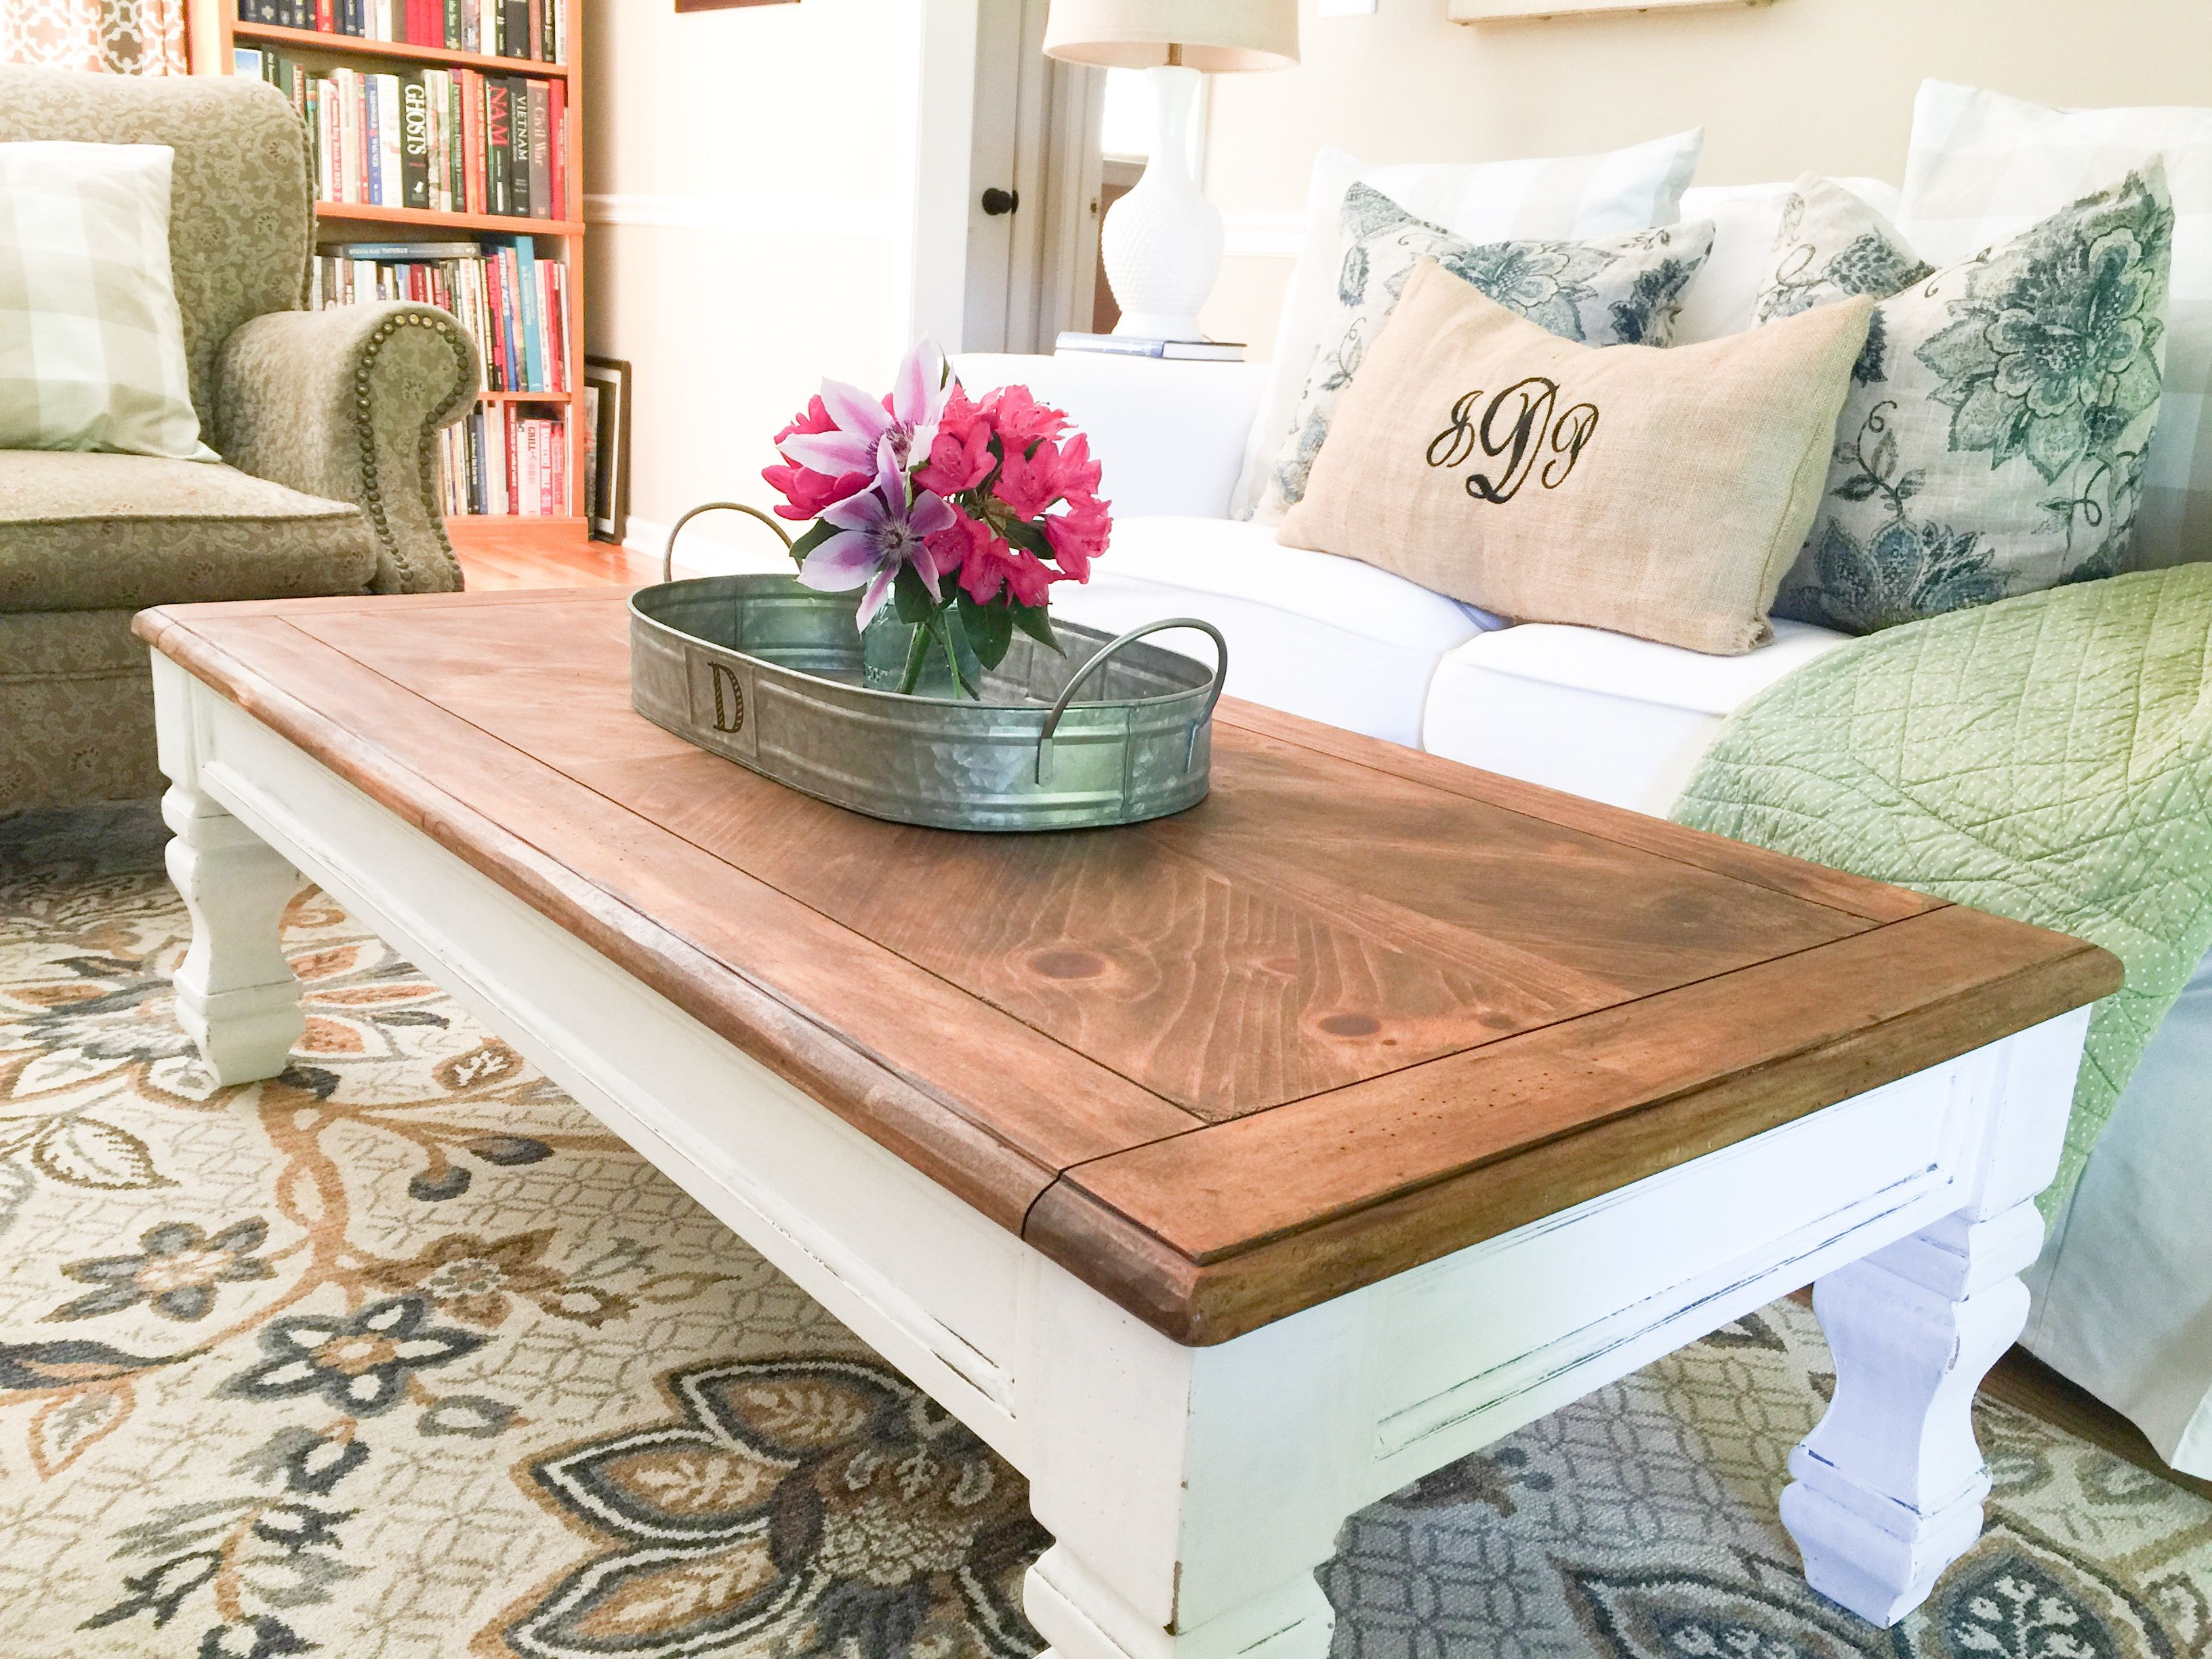 2017 05 wood coffee table diy - Diy Farmhouse Coffee Table Http Www Southerncurated Com 2017